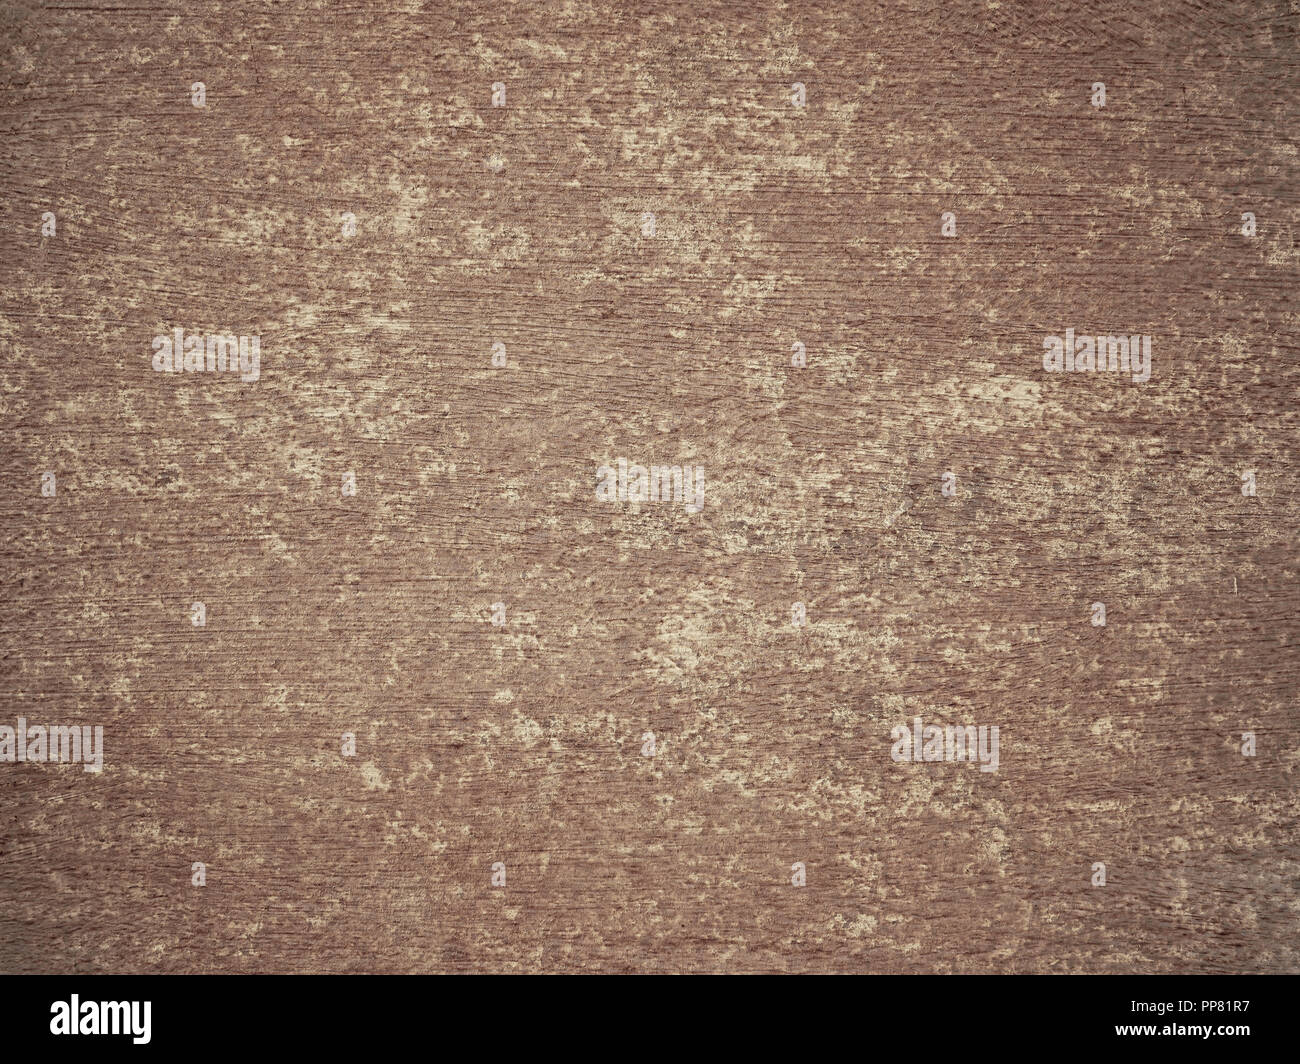 Large Ancient Textures And Backgrounds With Space Stock Photo Alamy